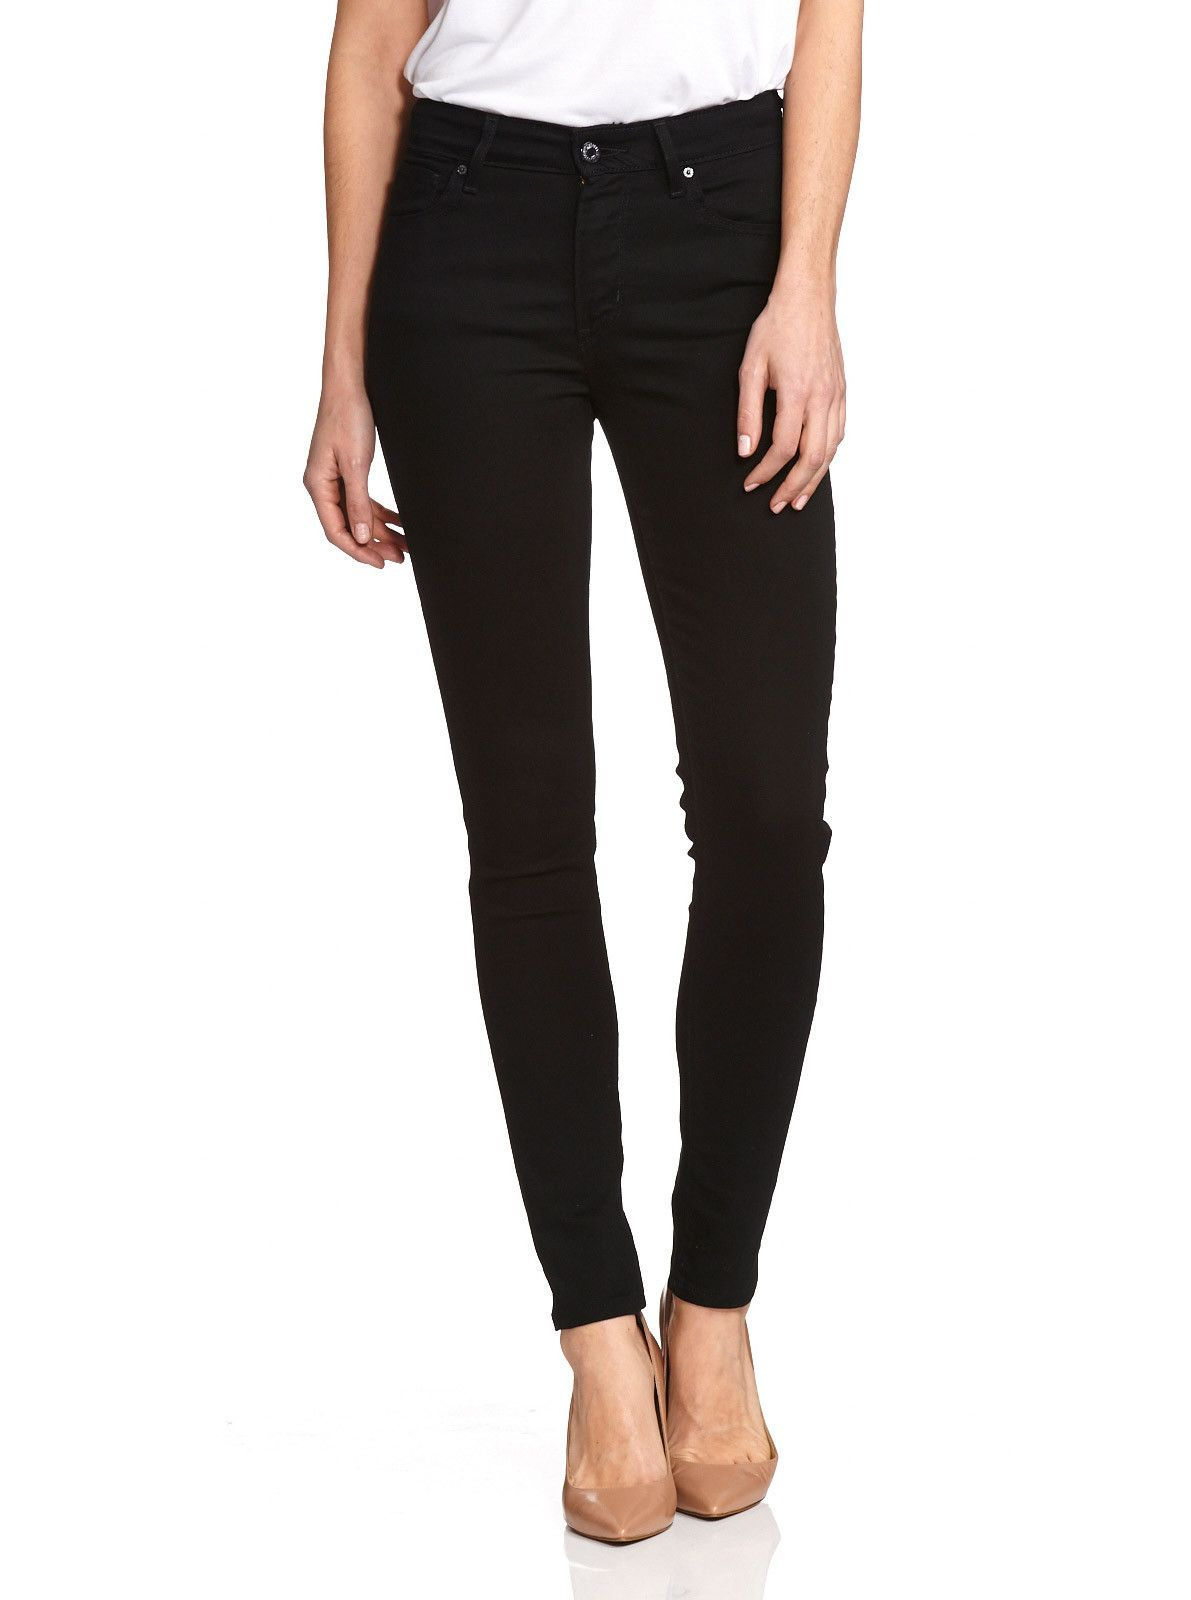 Levi's Womens 721 High Rise Skinny Black Sheep Denim Jeans Size 0 ...